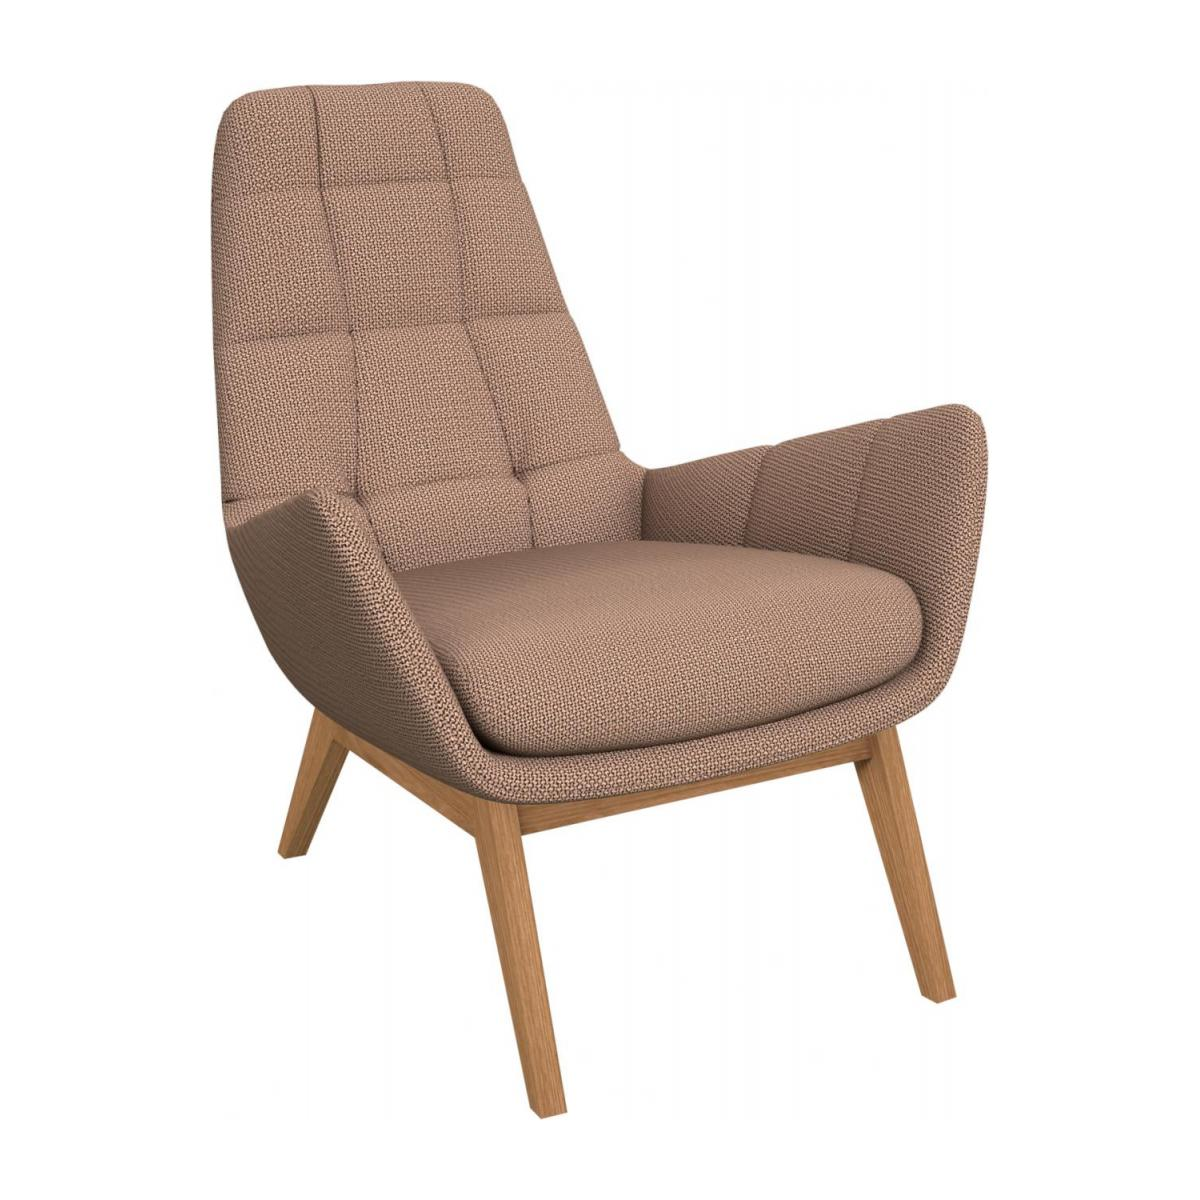 Armchair in Fasoli fabric, Jatoba brown with oak legs n°1